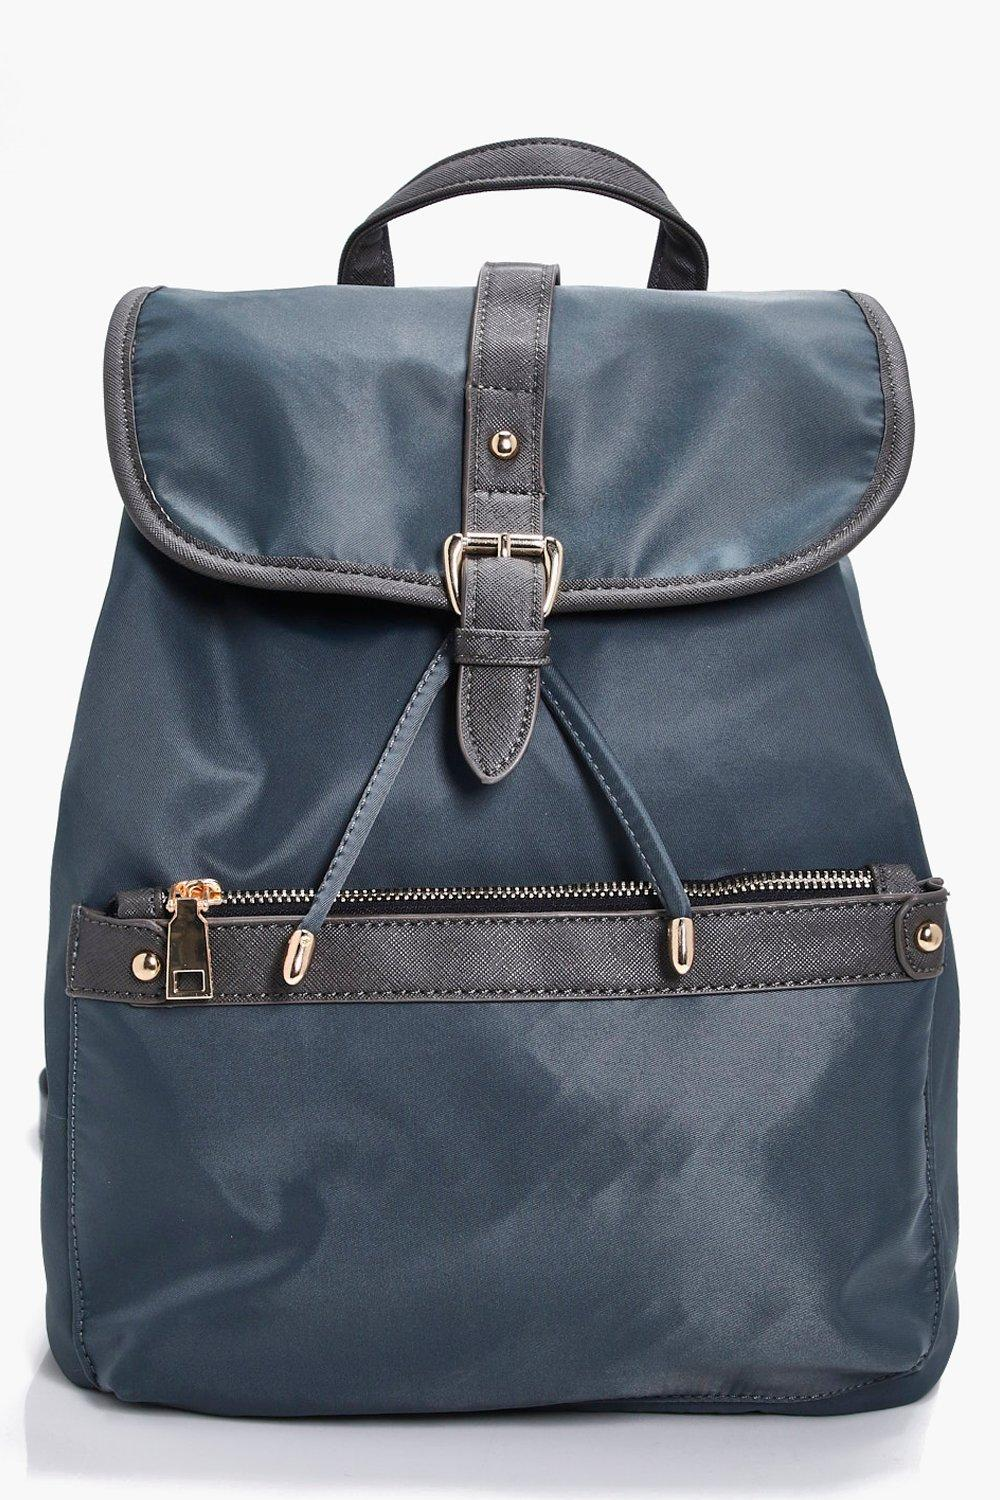 Nylon Pocket Rucksack - grey - Millie Nylon Pocket